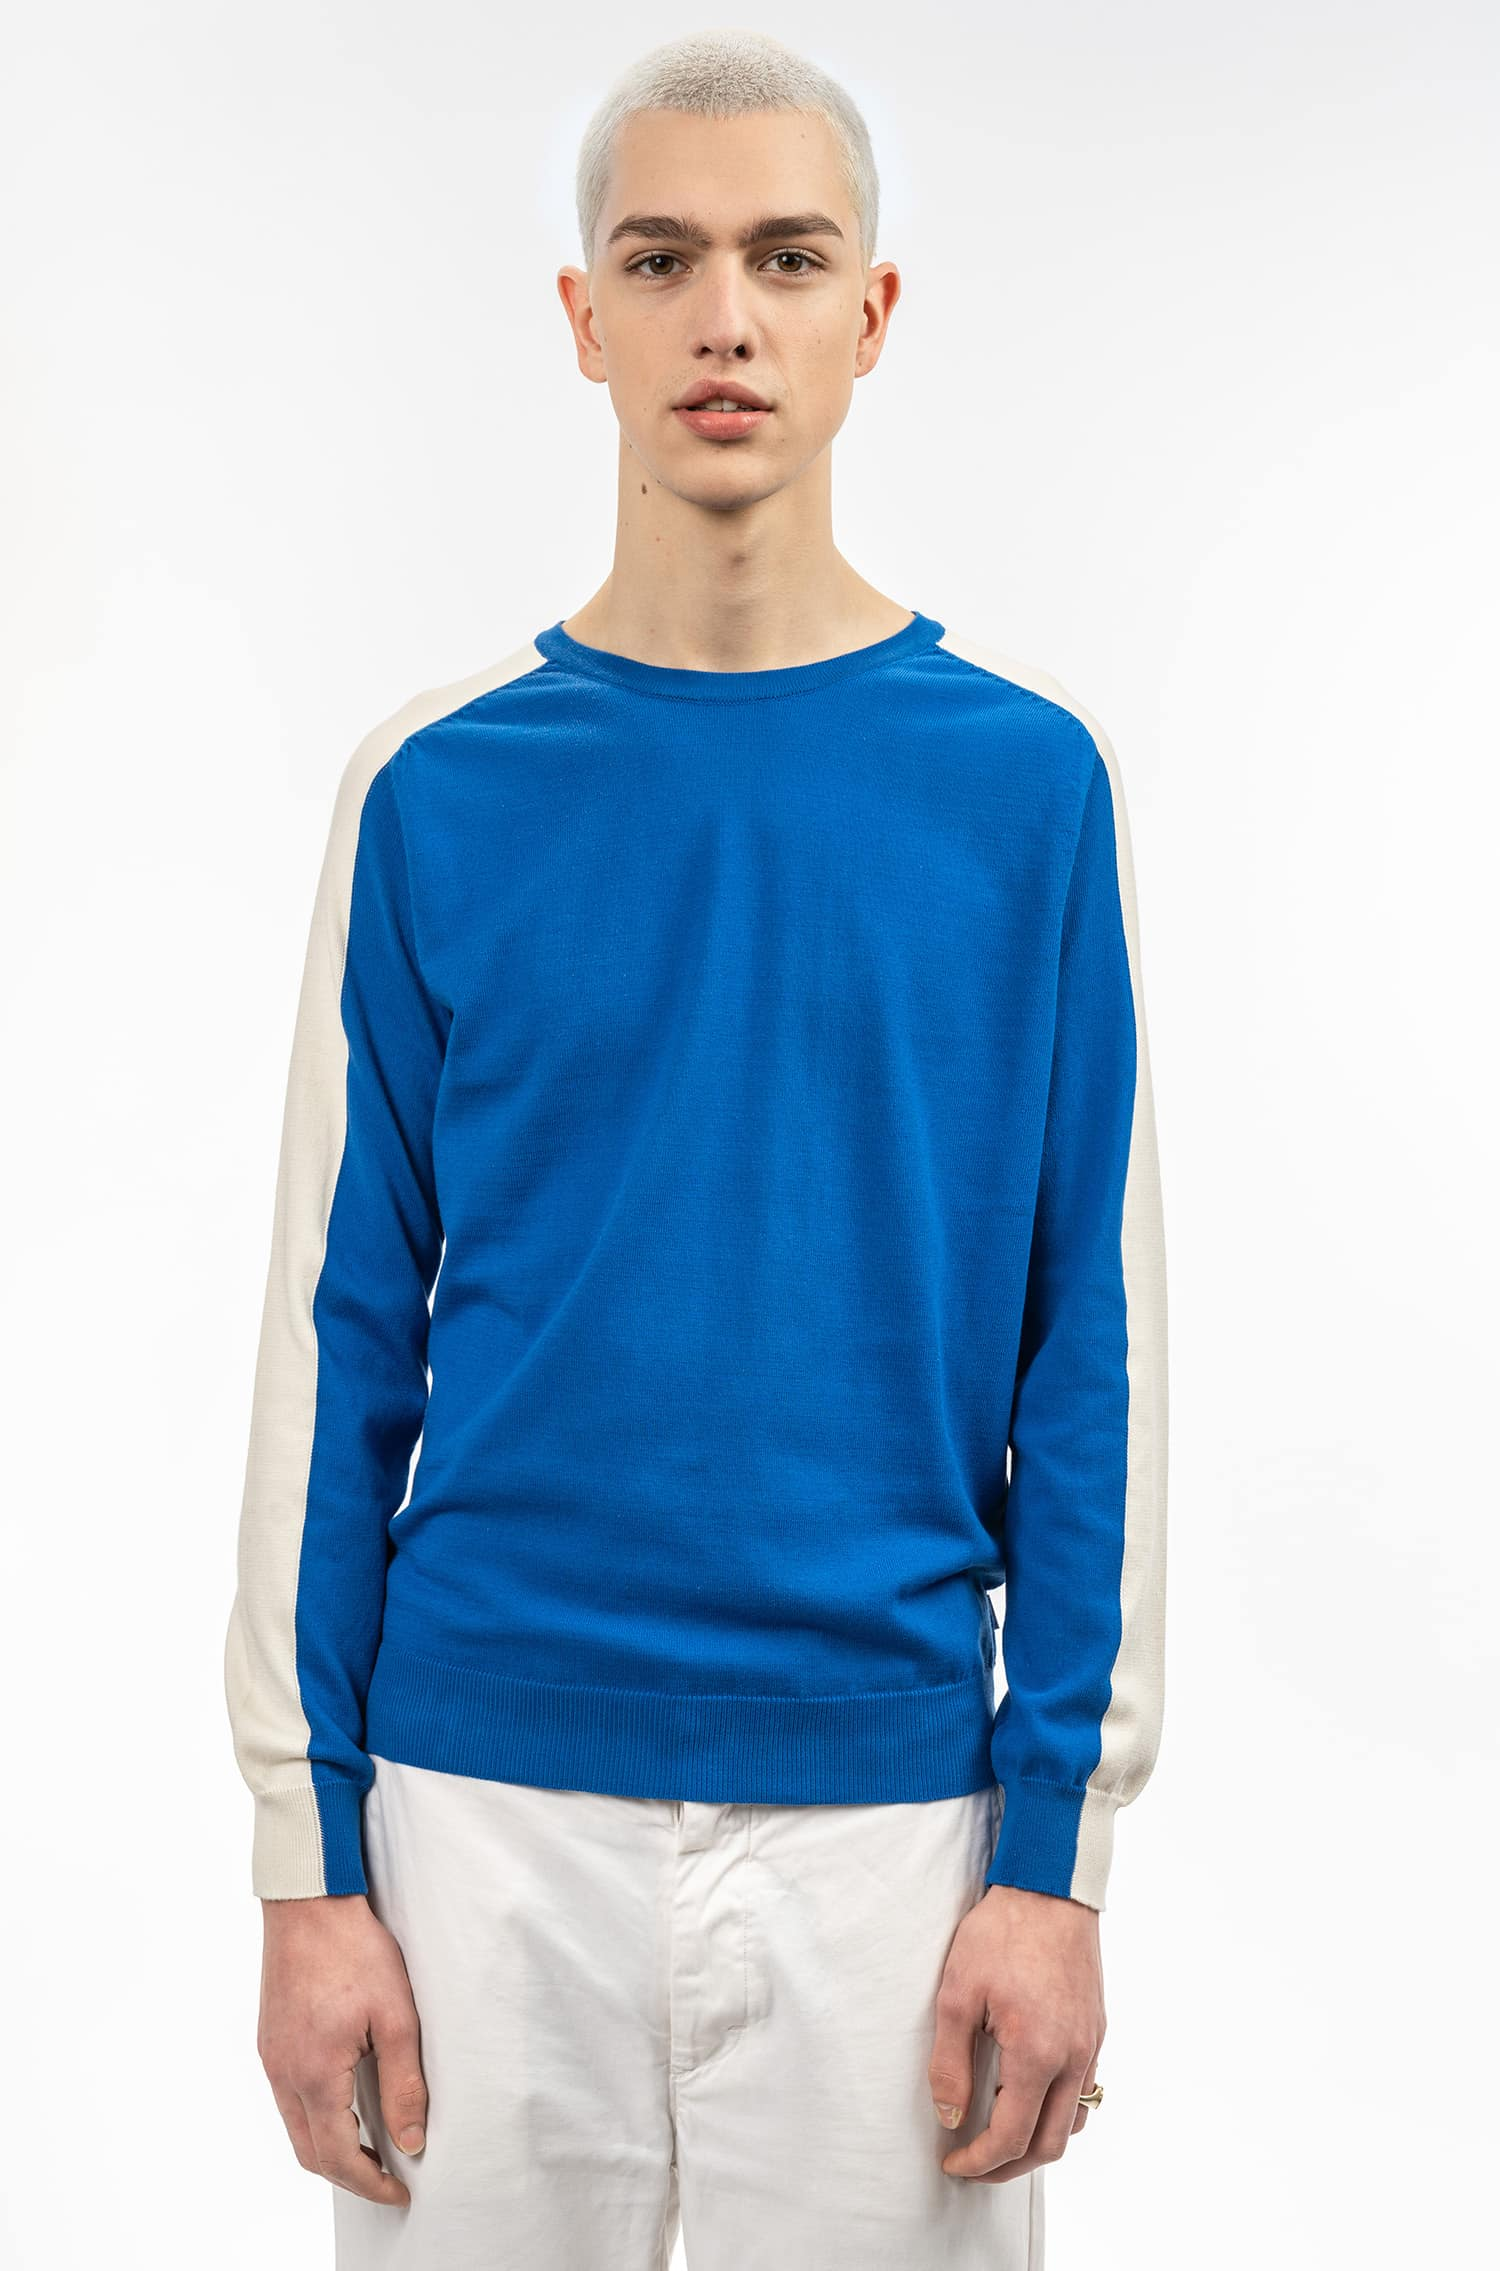 Flatbush Knitwear - Light Blue